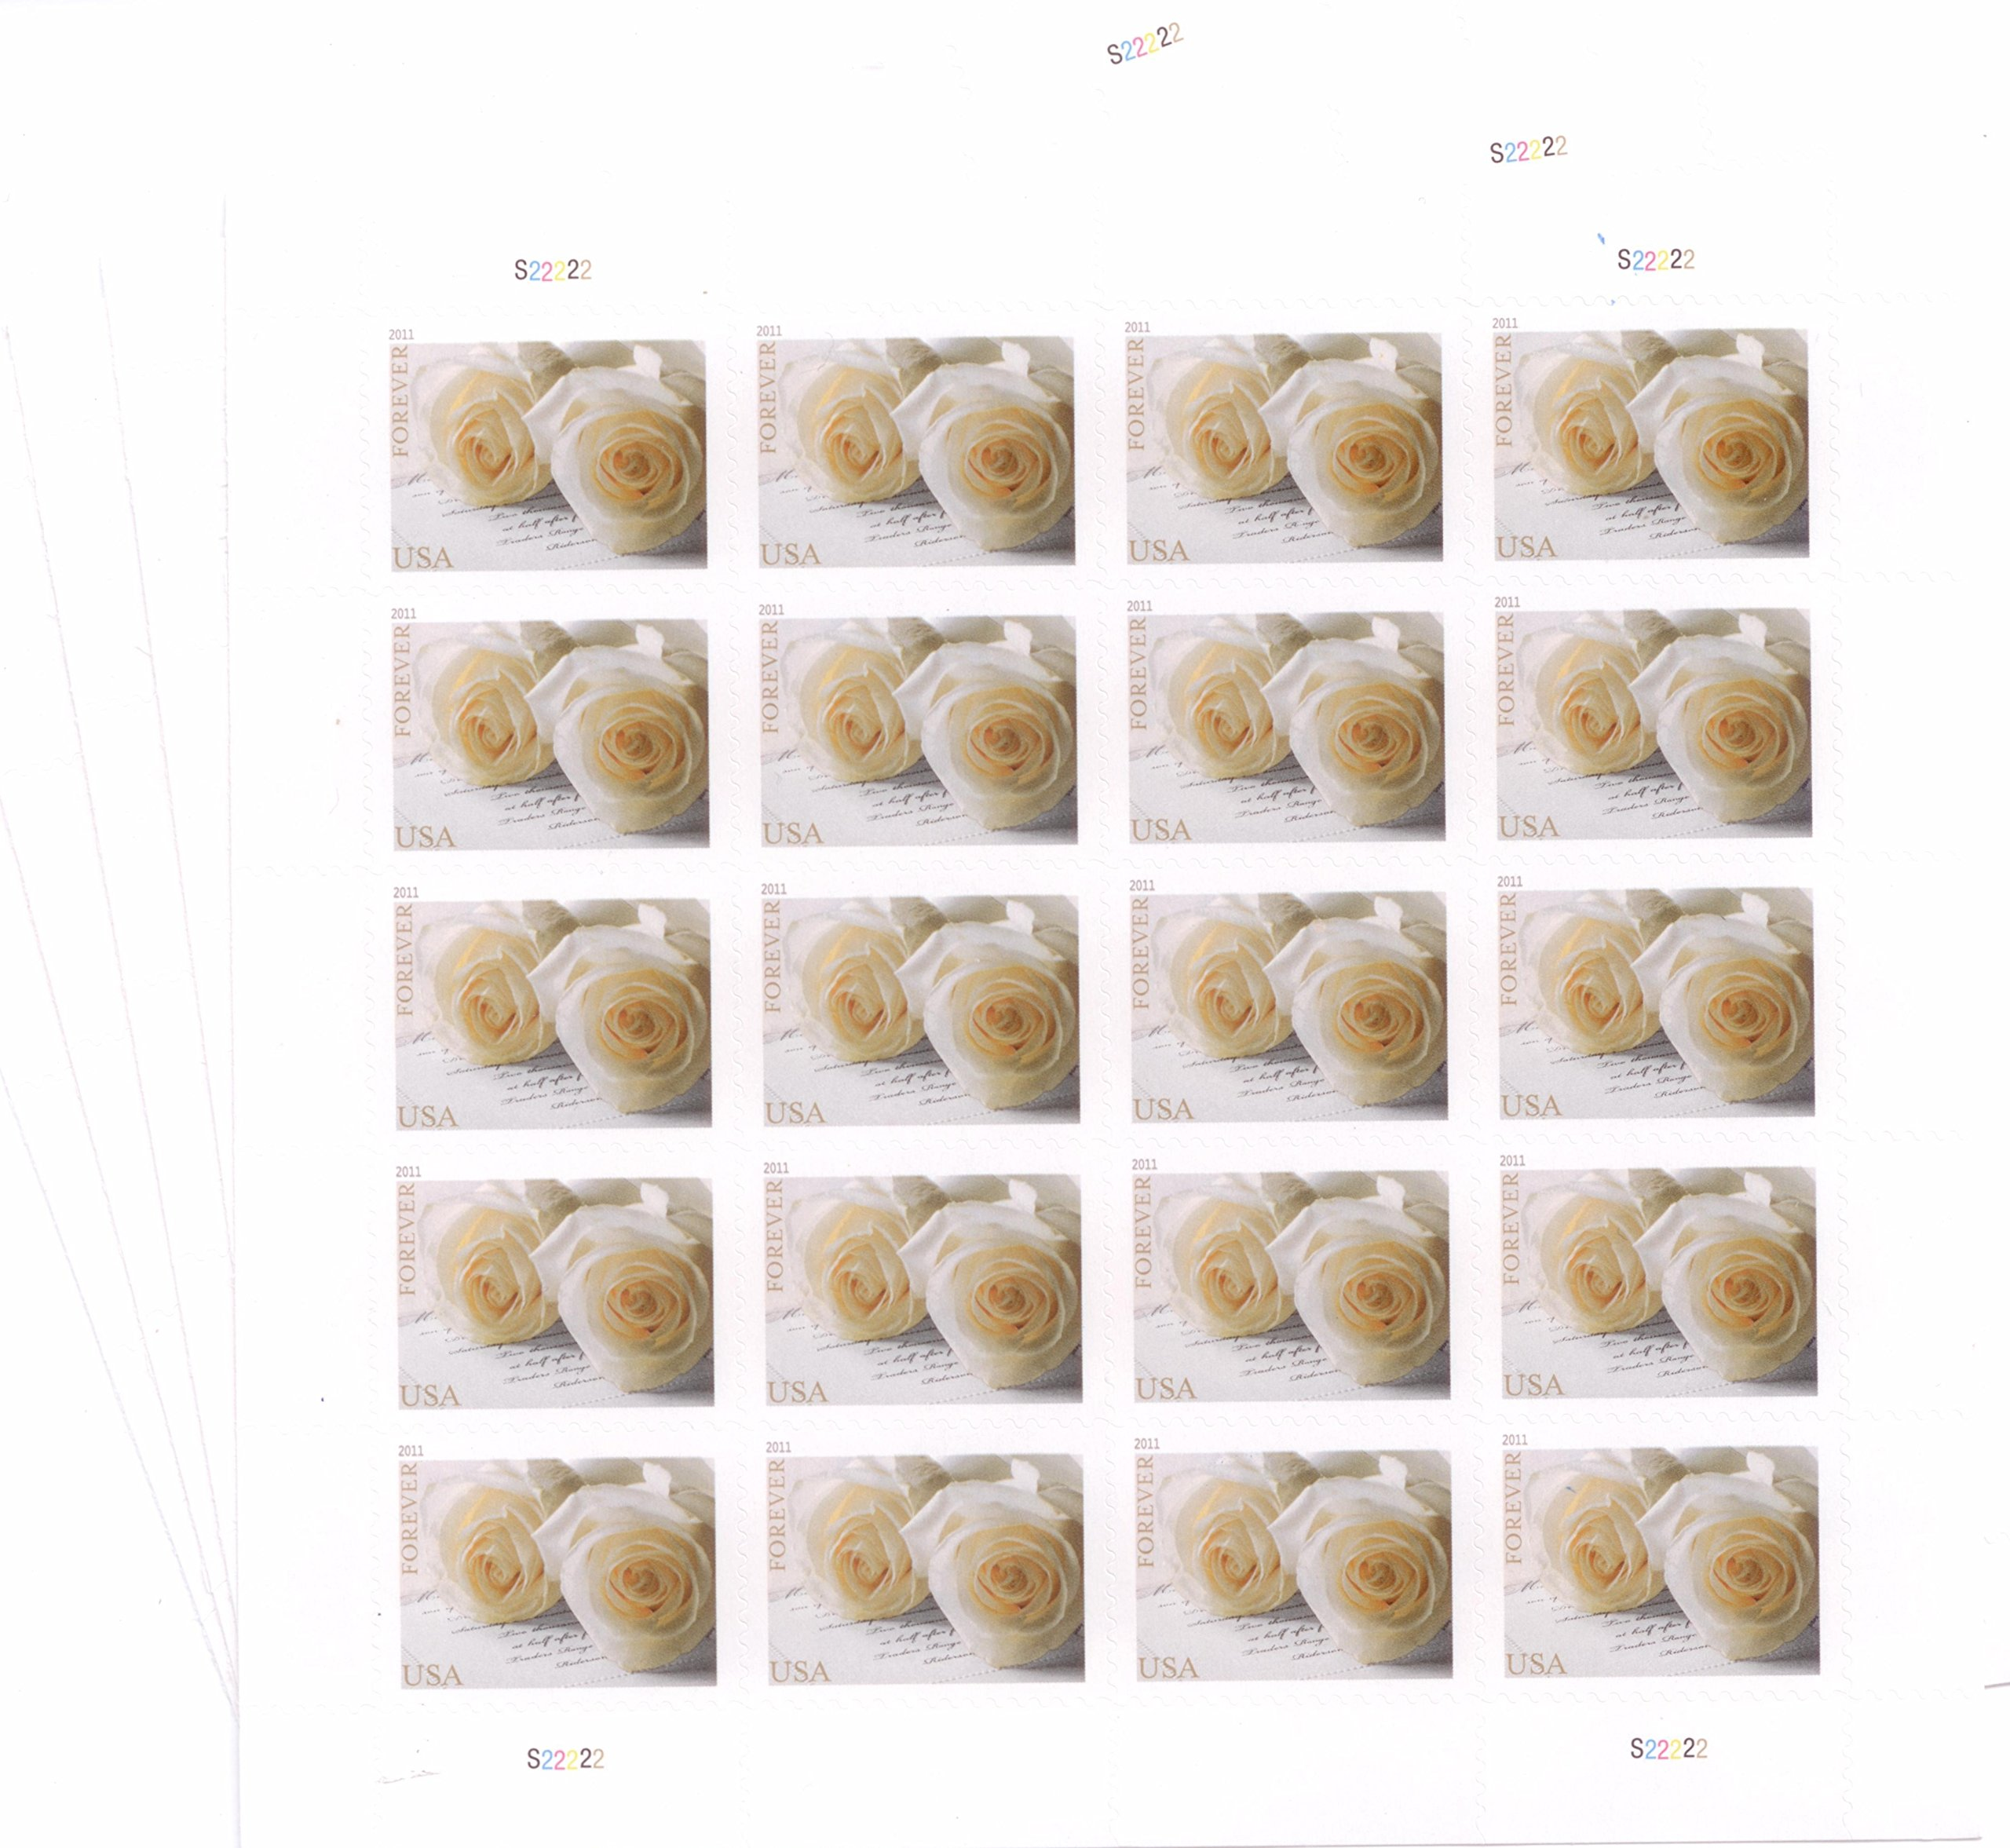 USPS 575900 Series Wedding Roses Commemorative Stamp Scott 4520 Sheet of 20 Forever Stamps by USPS